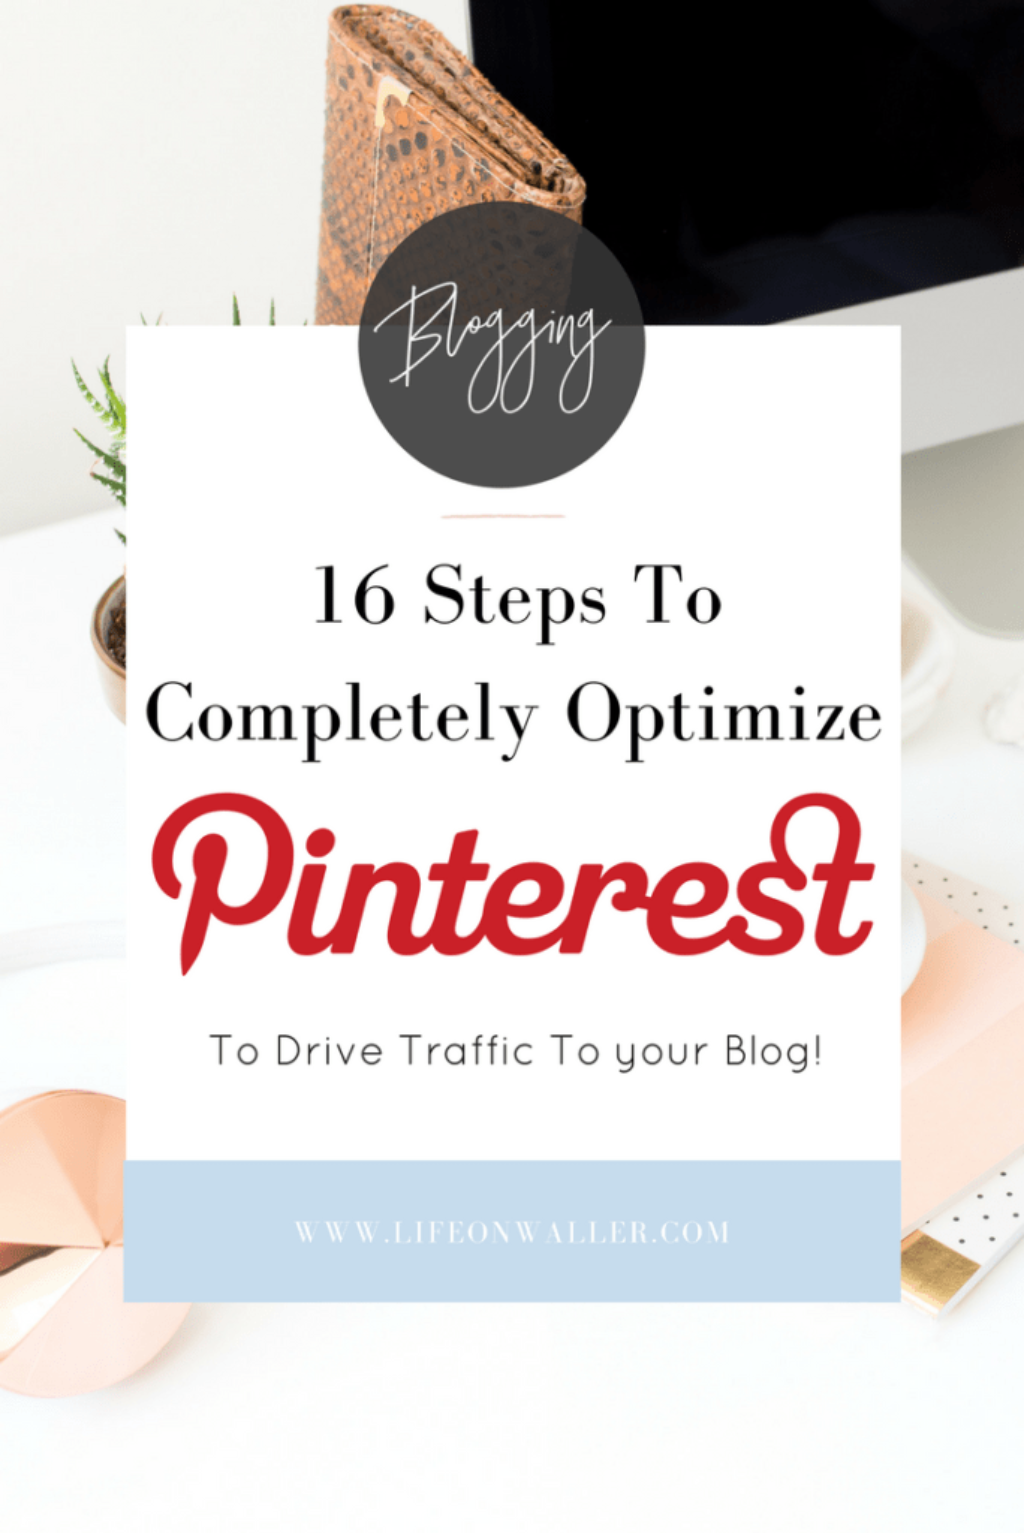 Optimize pinterest for your blog